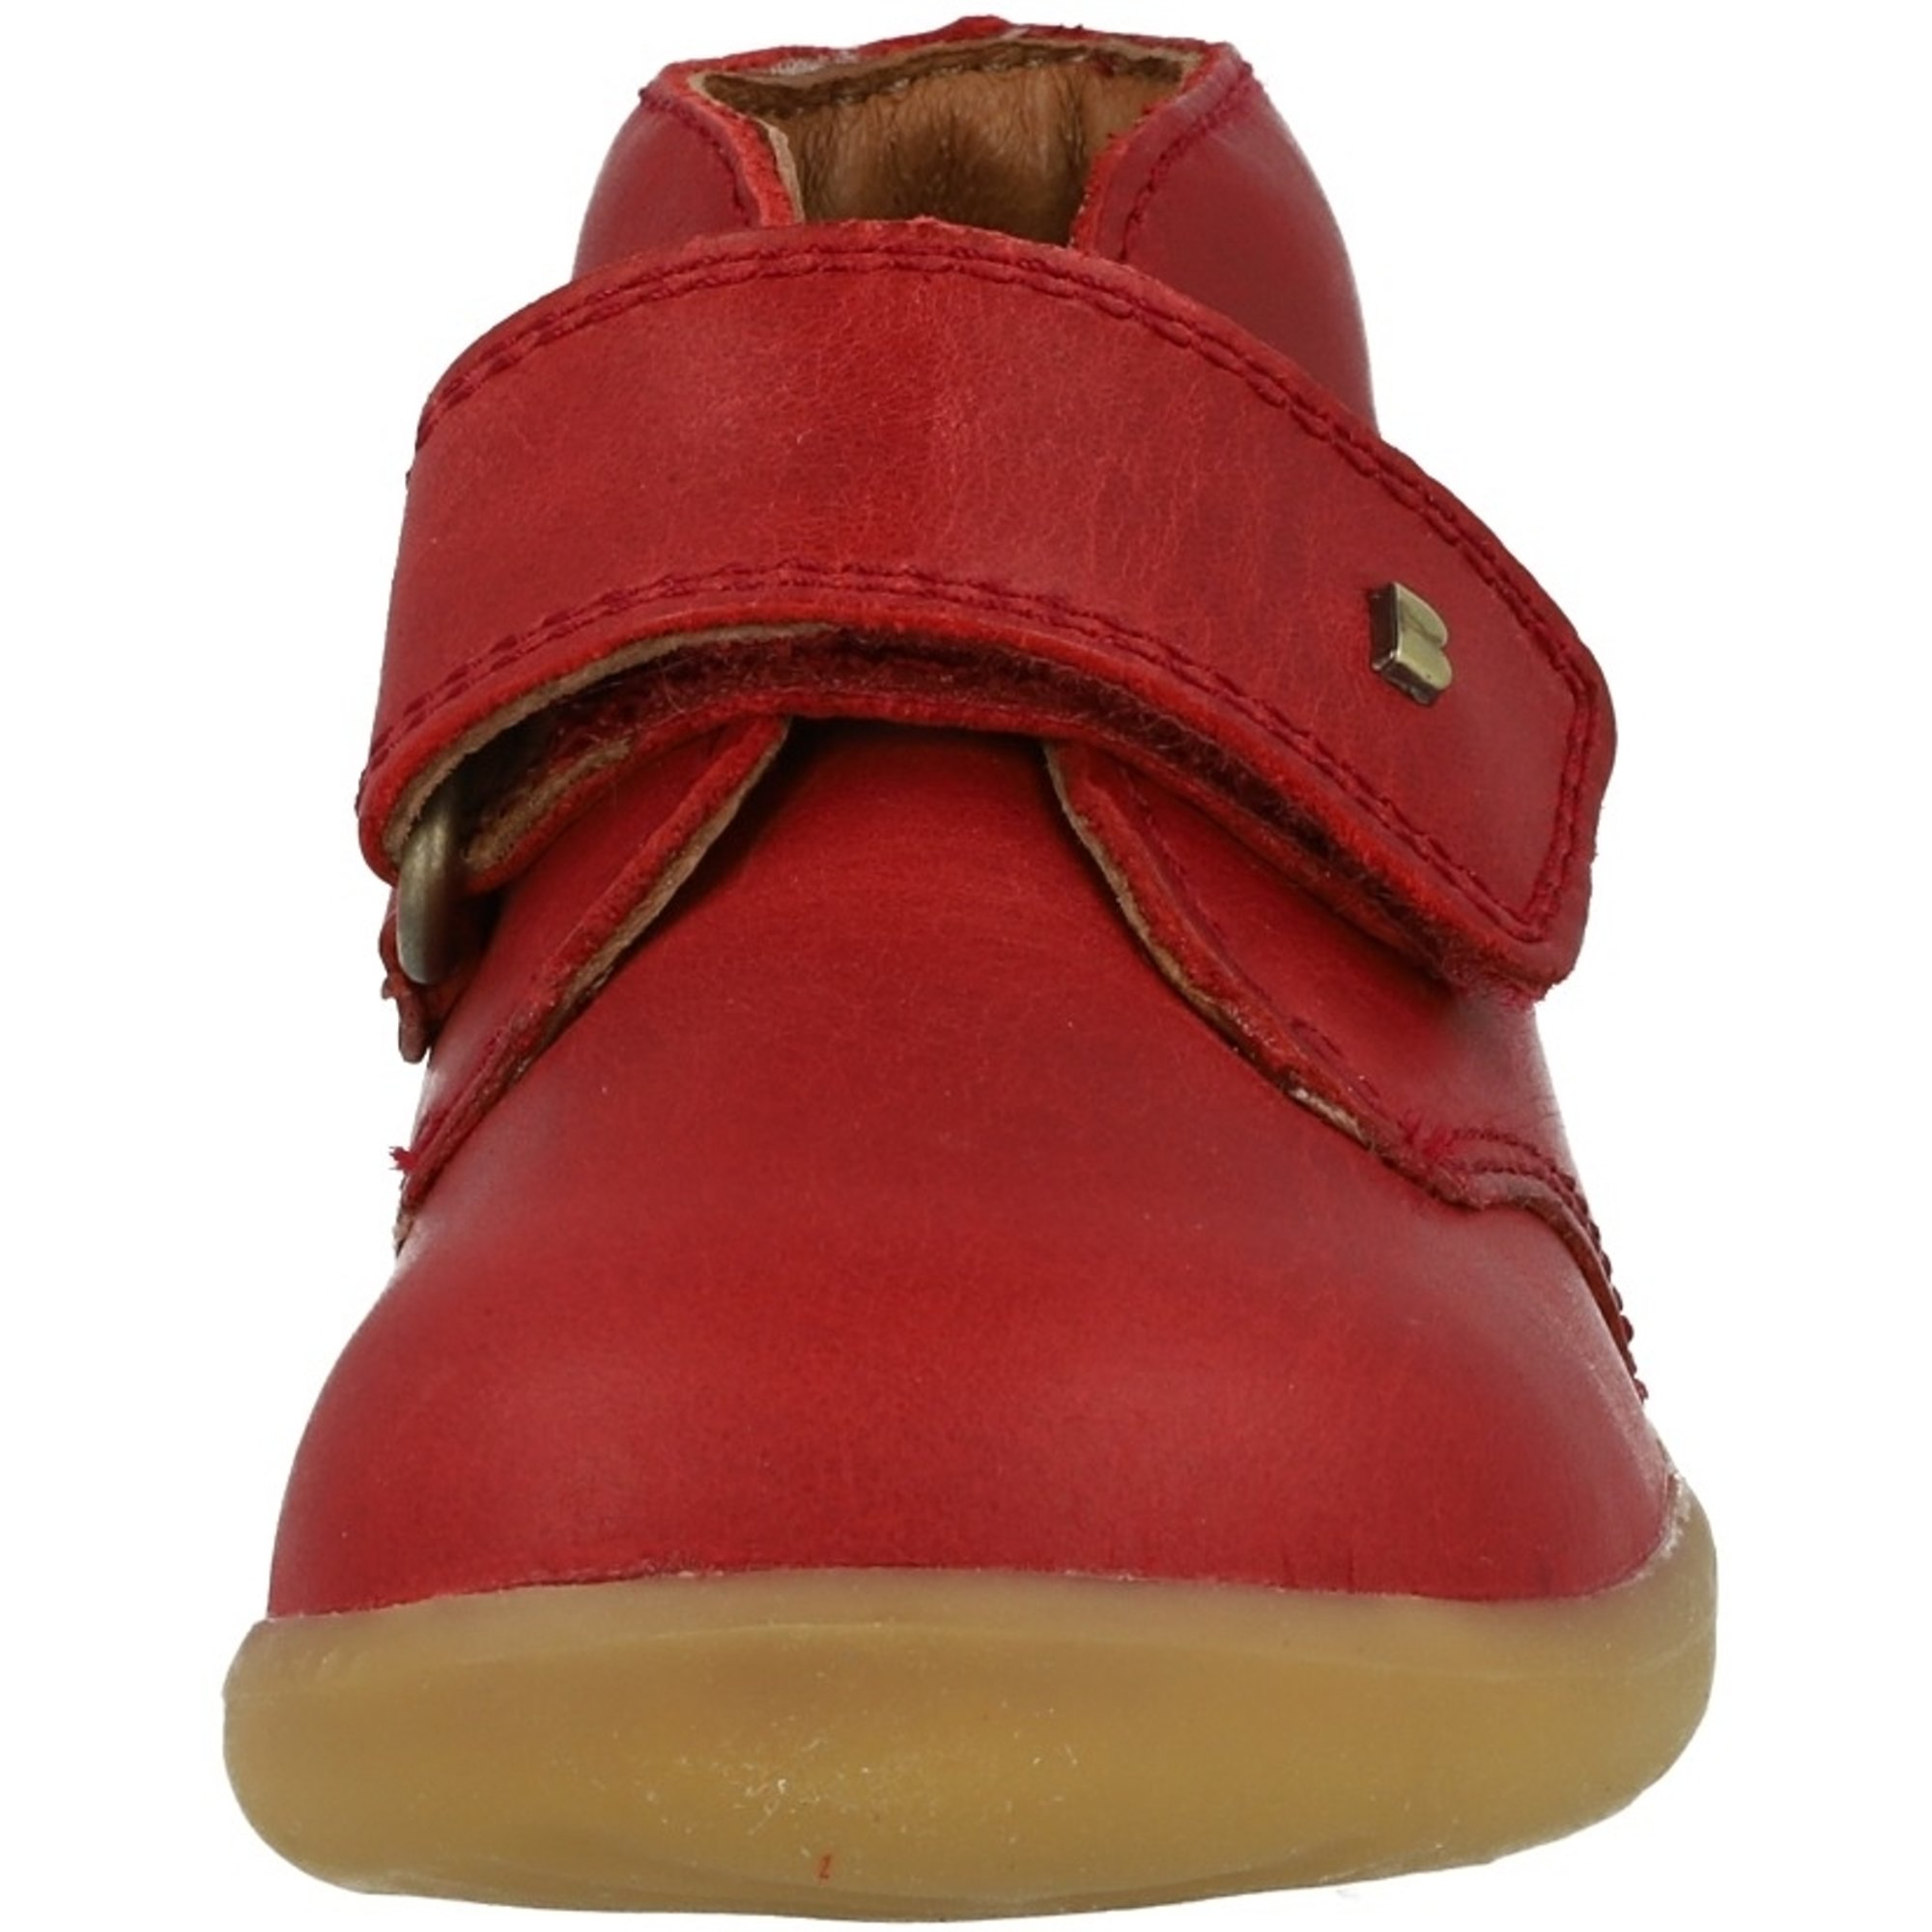 Bobux Step Up Dessert Rio Red Leather